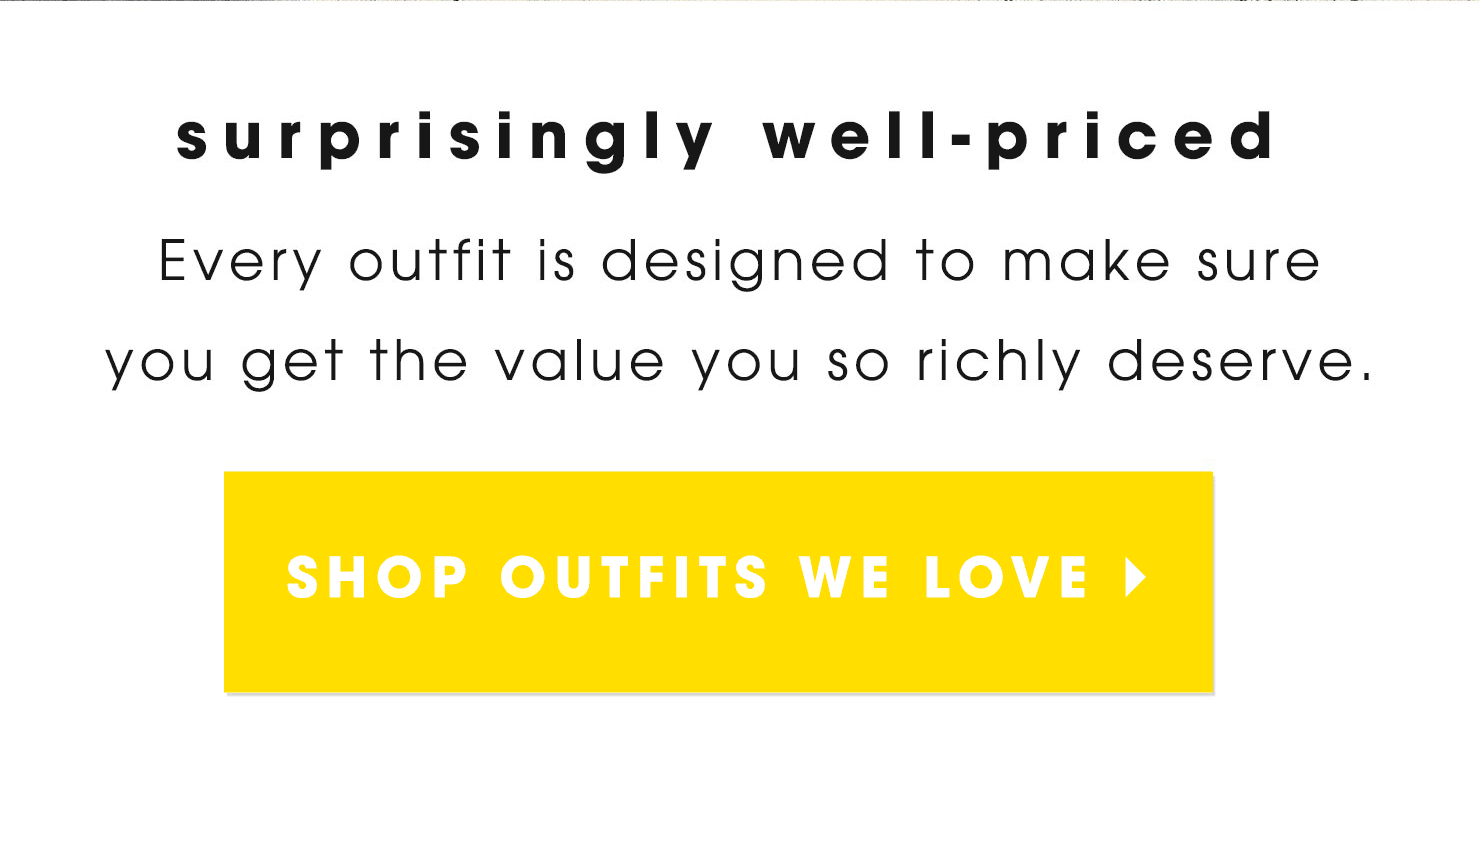 Surprisingly well-priced! Every outfit is designed to make sure you get the value you so richly deserve.